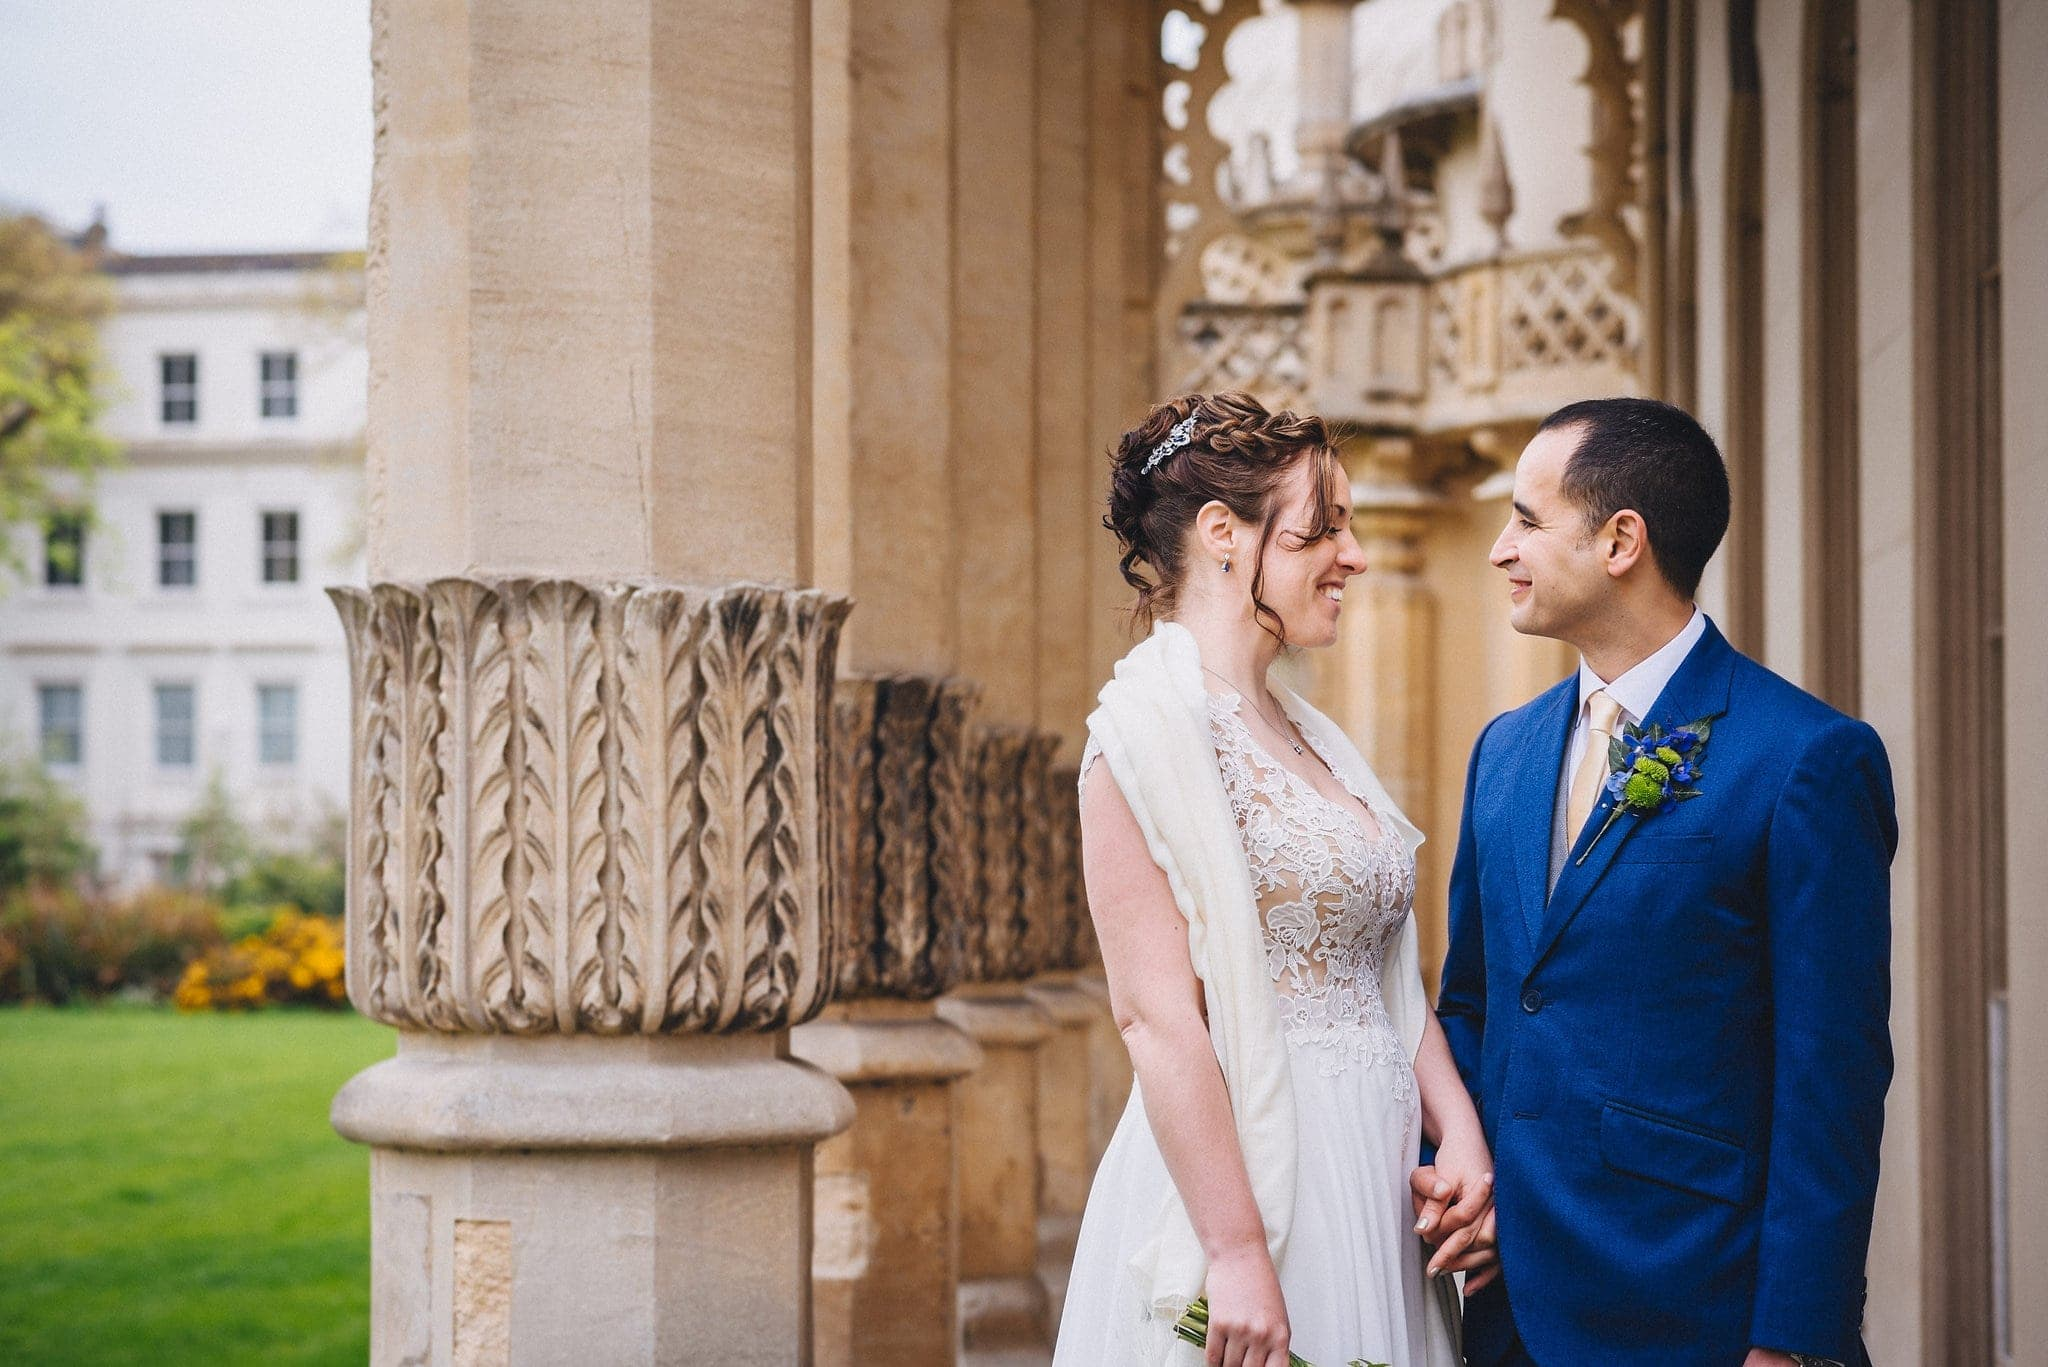 Bride and groom outside Royal Pavilion in Brighton